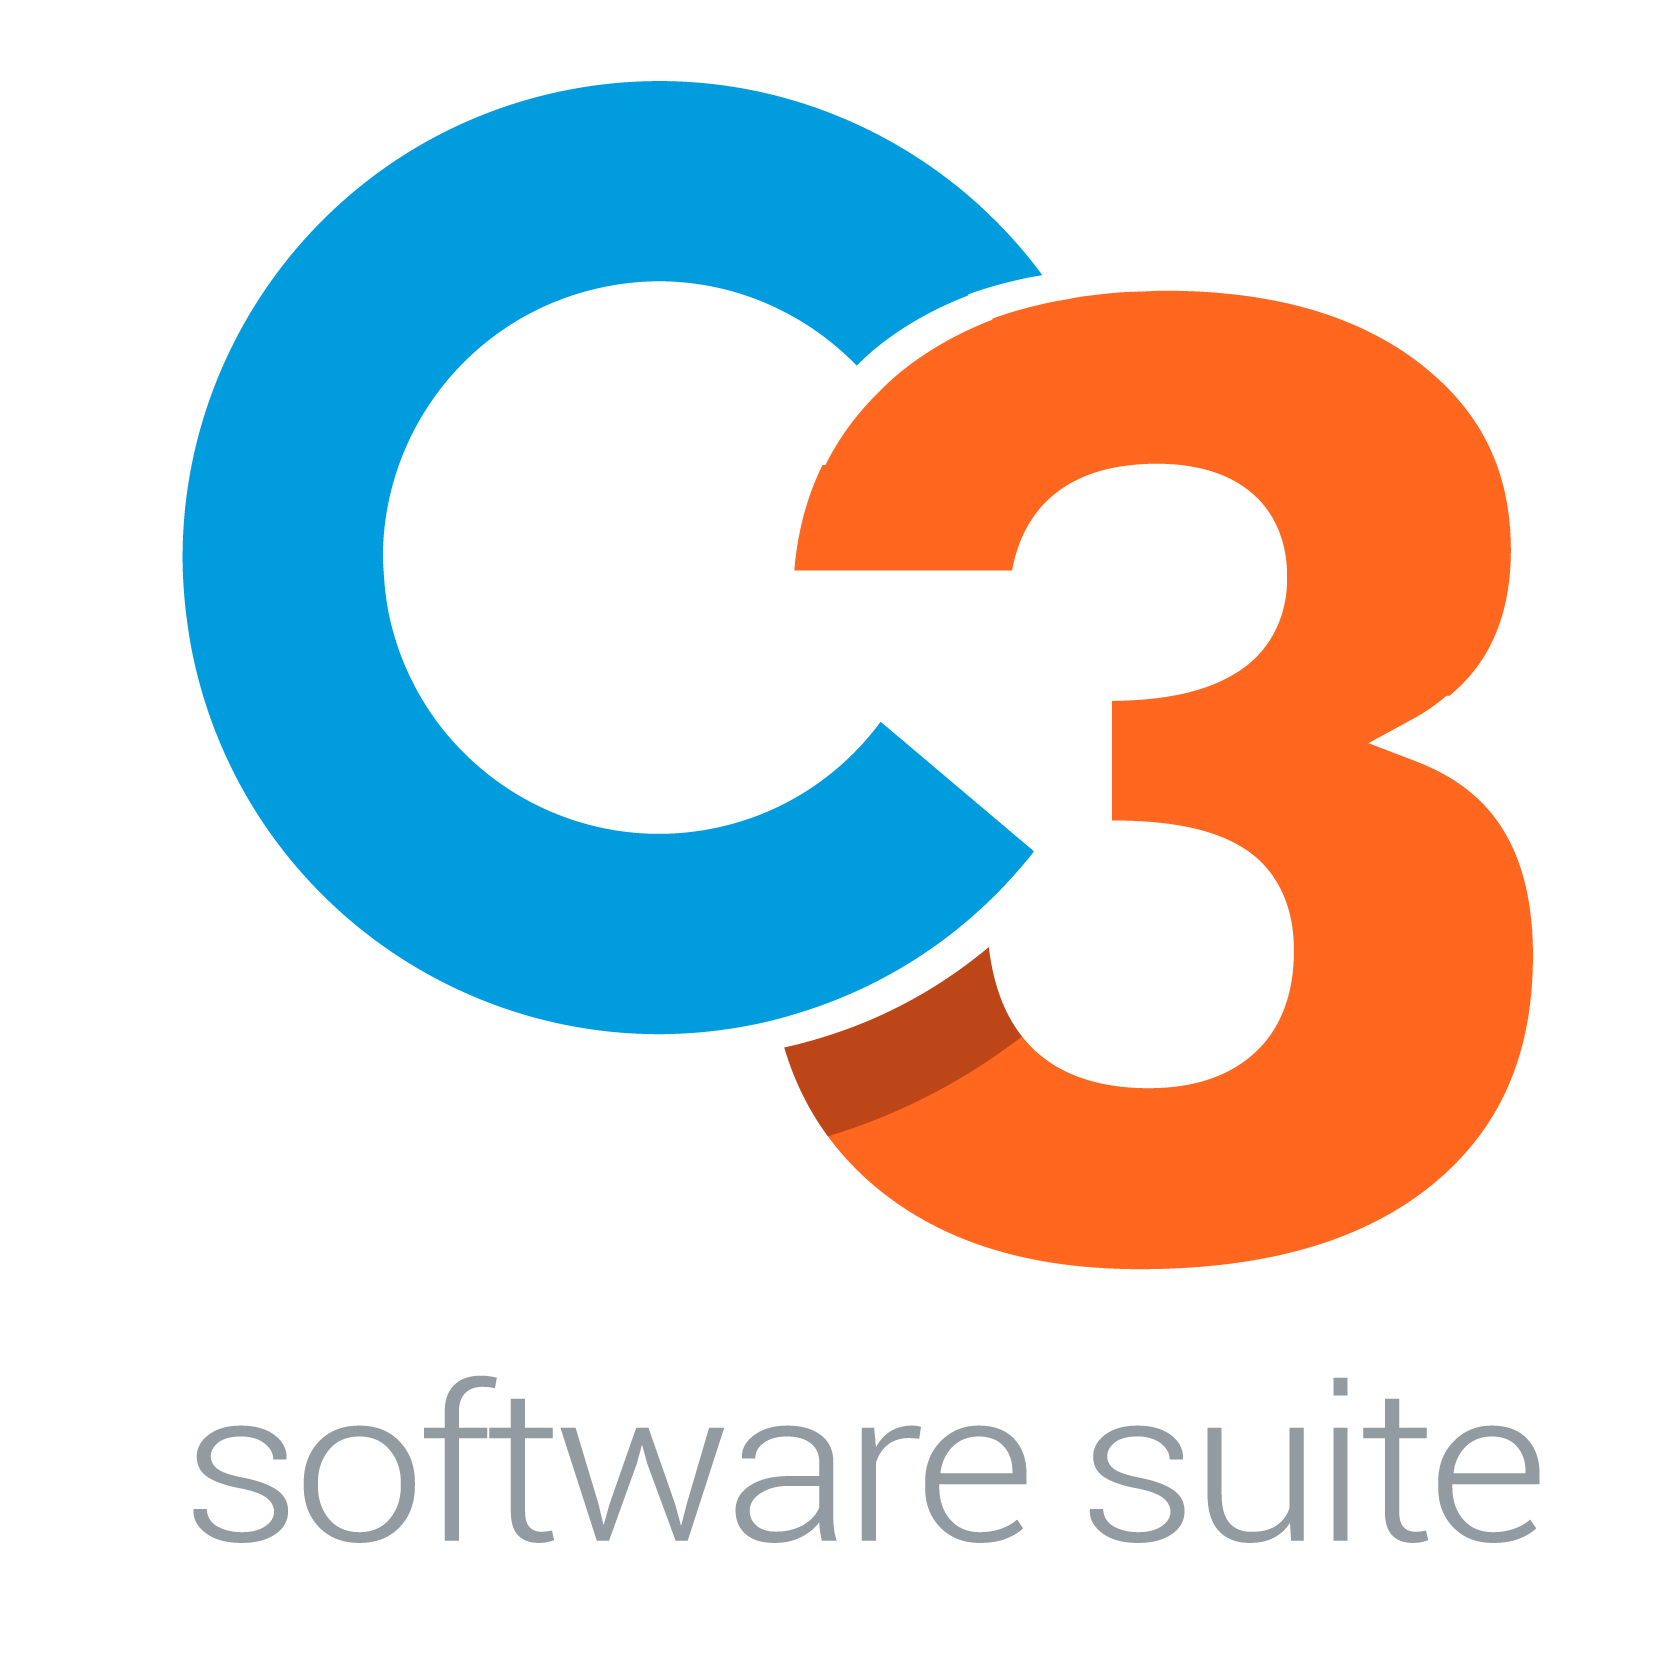 C3 software suite_RGB